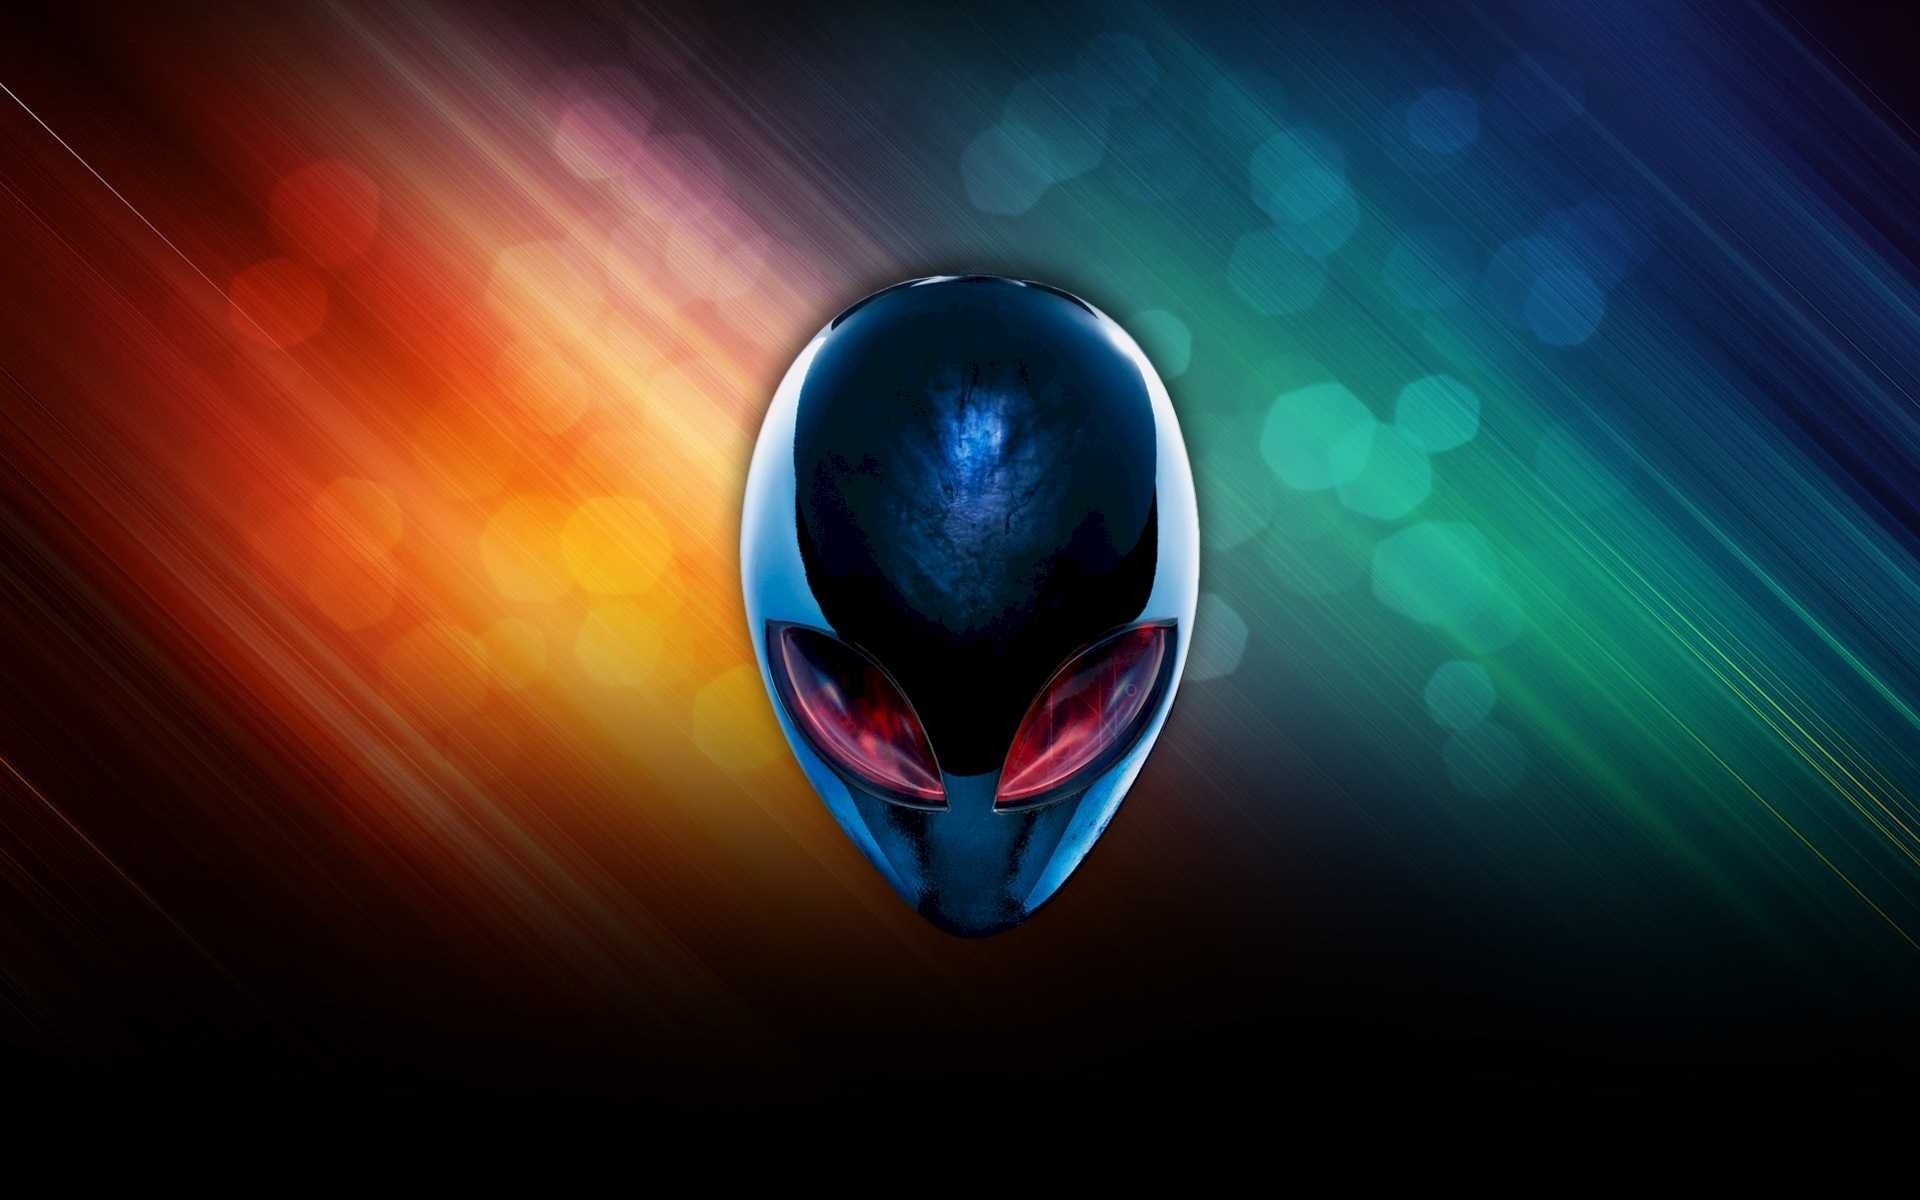 Alienware Wallpaper: Alienware Wallpaper ·① Download Free Stunning Full HD